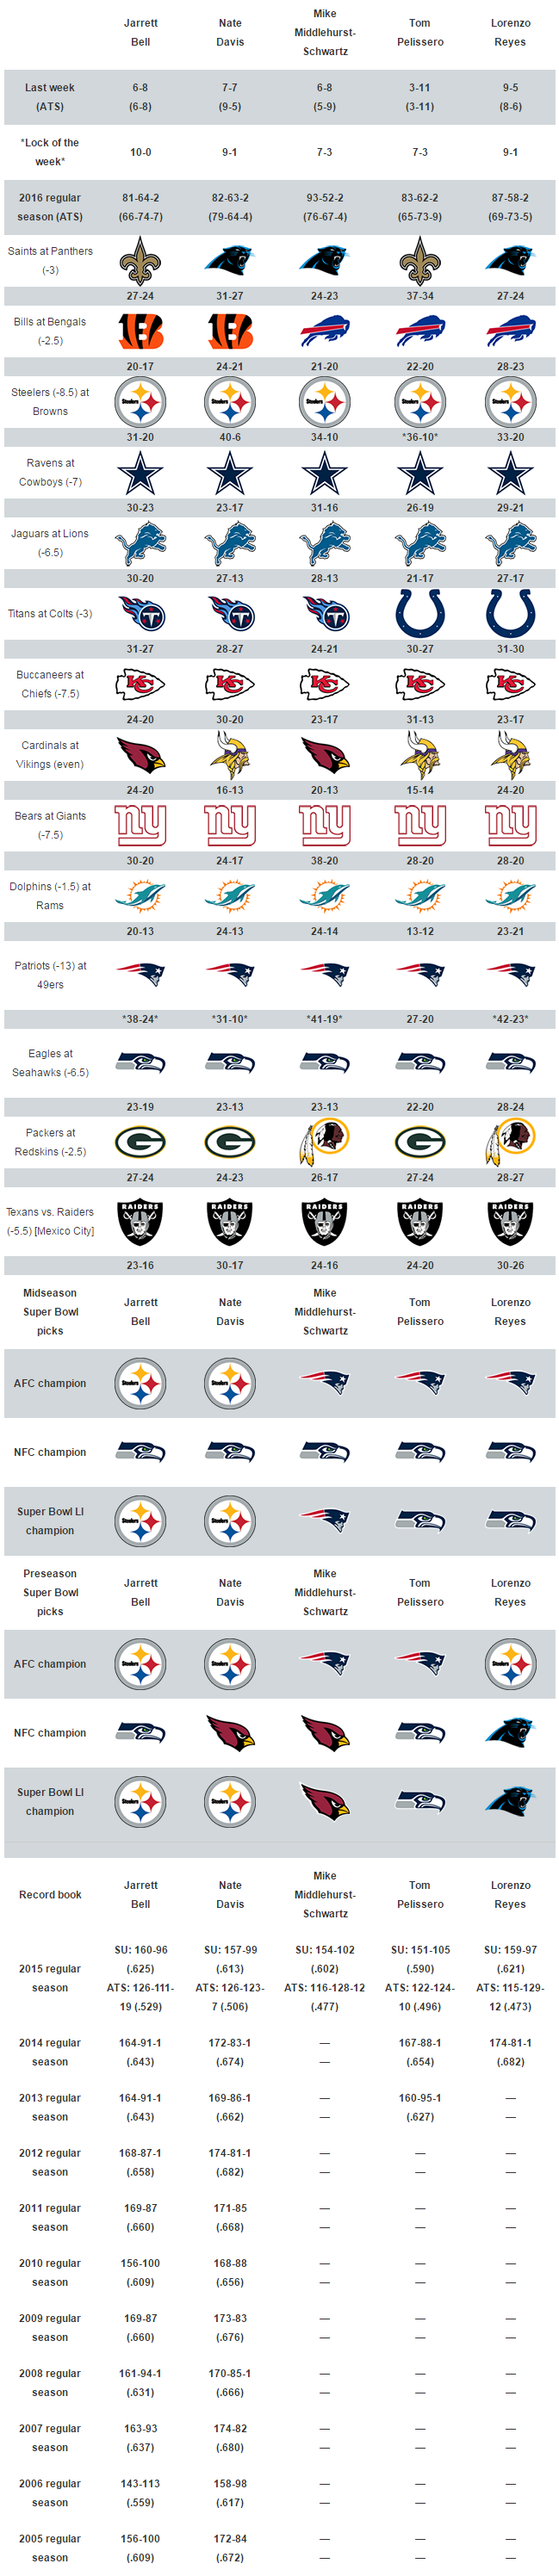 nfl betting pick nfl games today